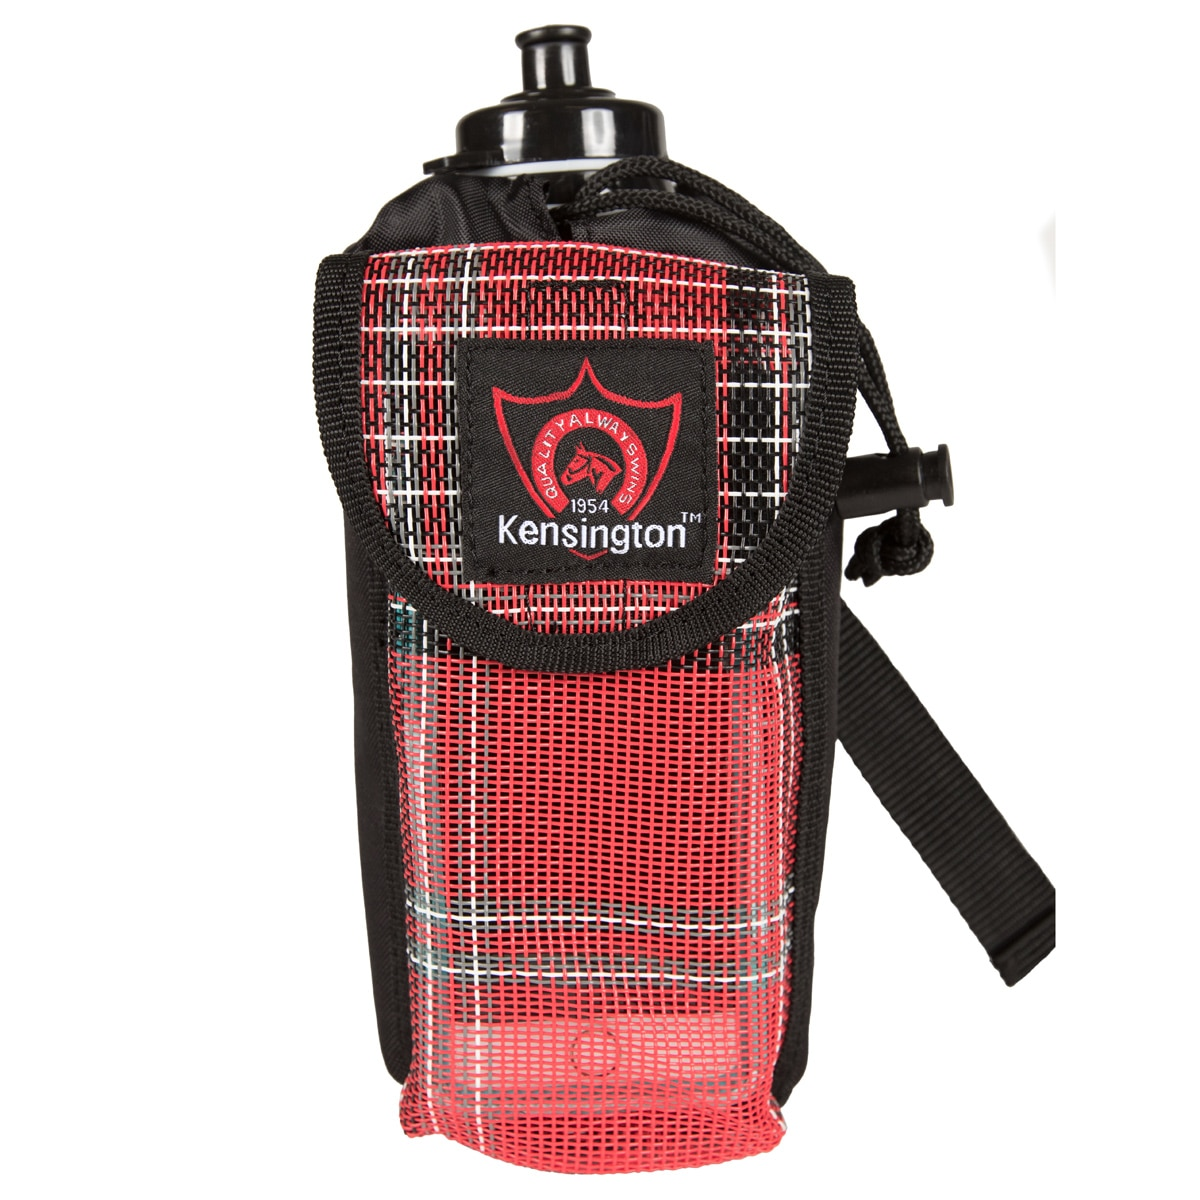 Kensington All Around Insulated Single Water Bottle Holder